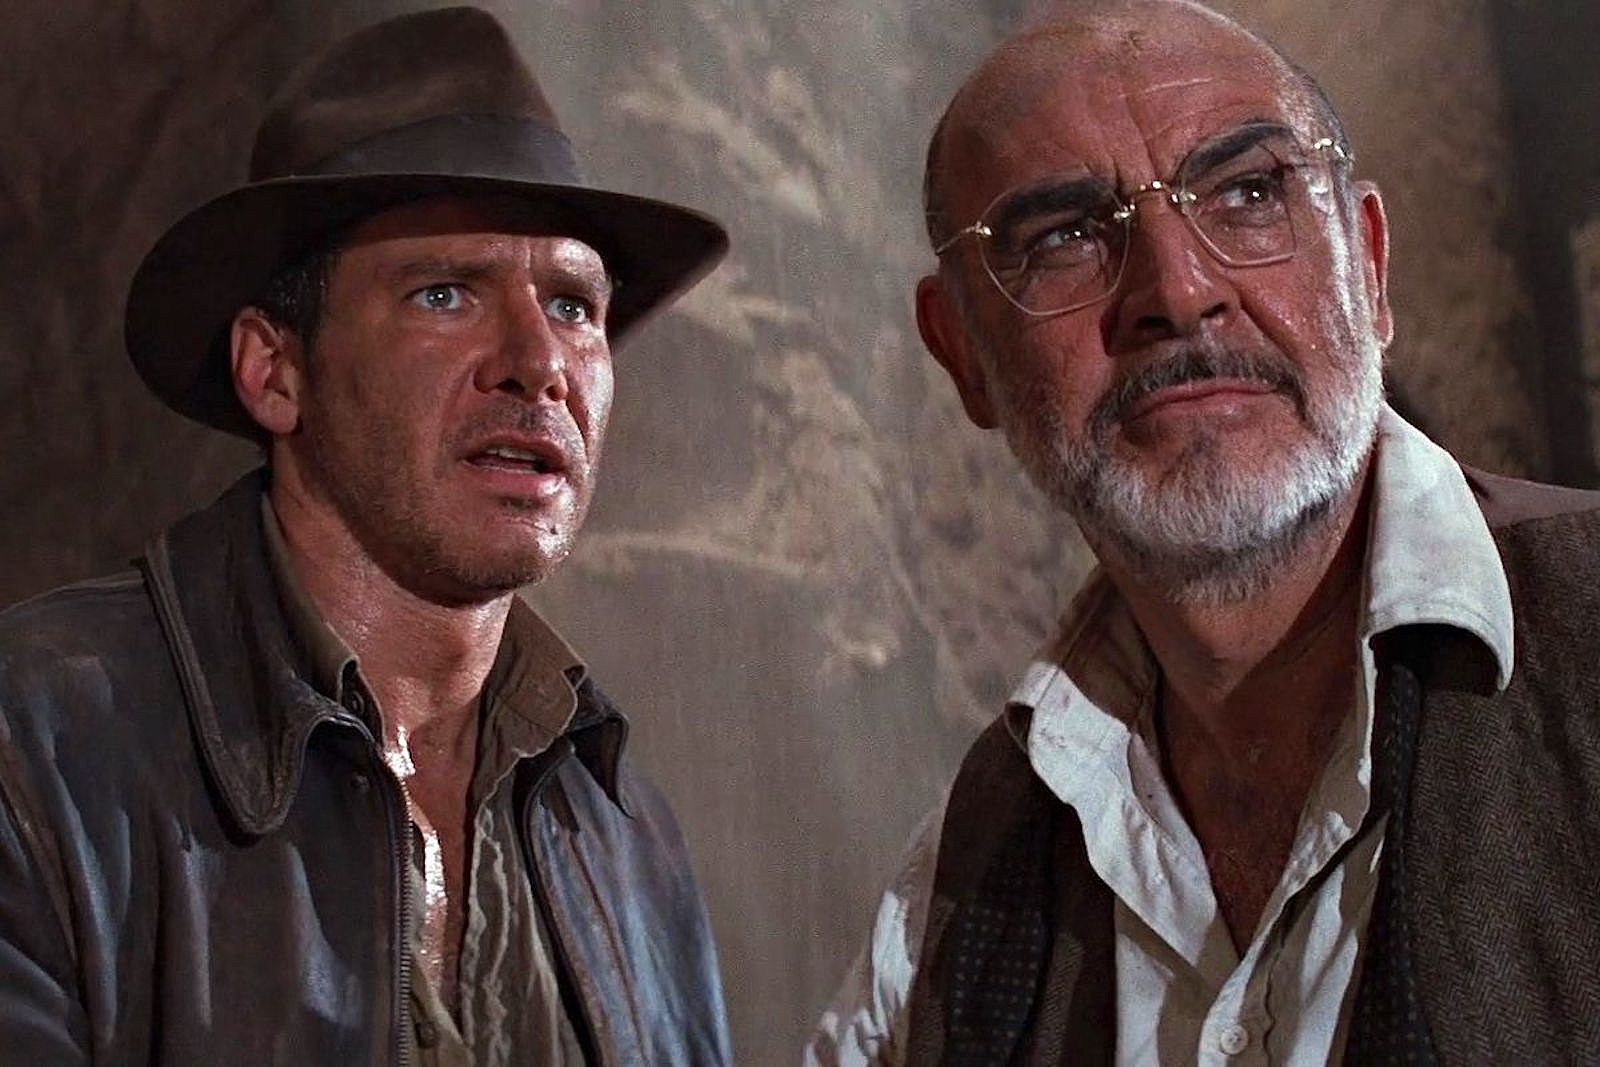 Indiana-Jones-and-the-Last-Crusade-Harri